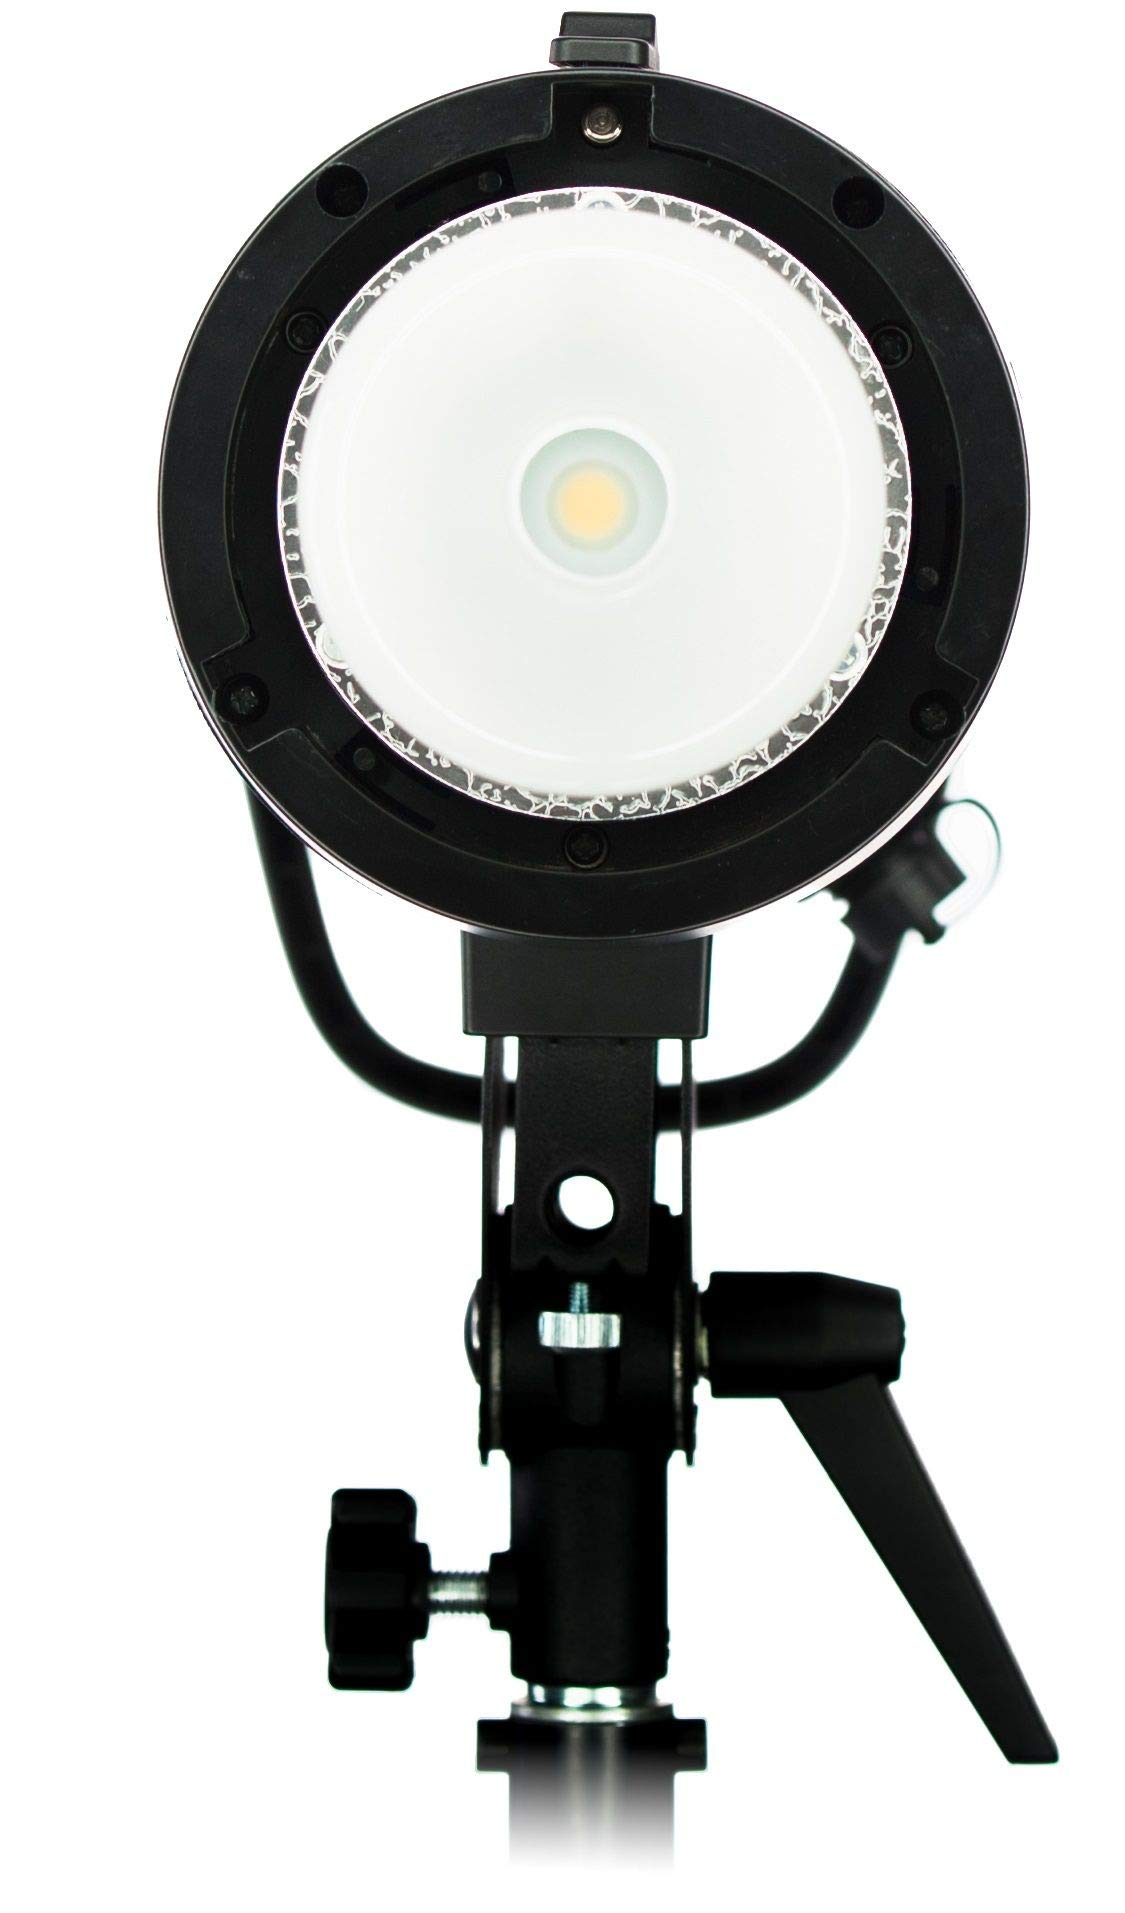 Interfit S1 500Ws HSS TTL AC and Battery-Powered Off-Camera Flash, Color Accurate 5700K +/- 100K, High Speed Sync to 1/8000s, Includes AC Power Pack and Removable Inline Lithium Ion Battery by Interfit Photographic